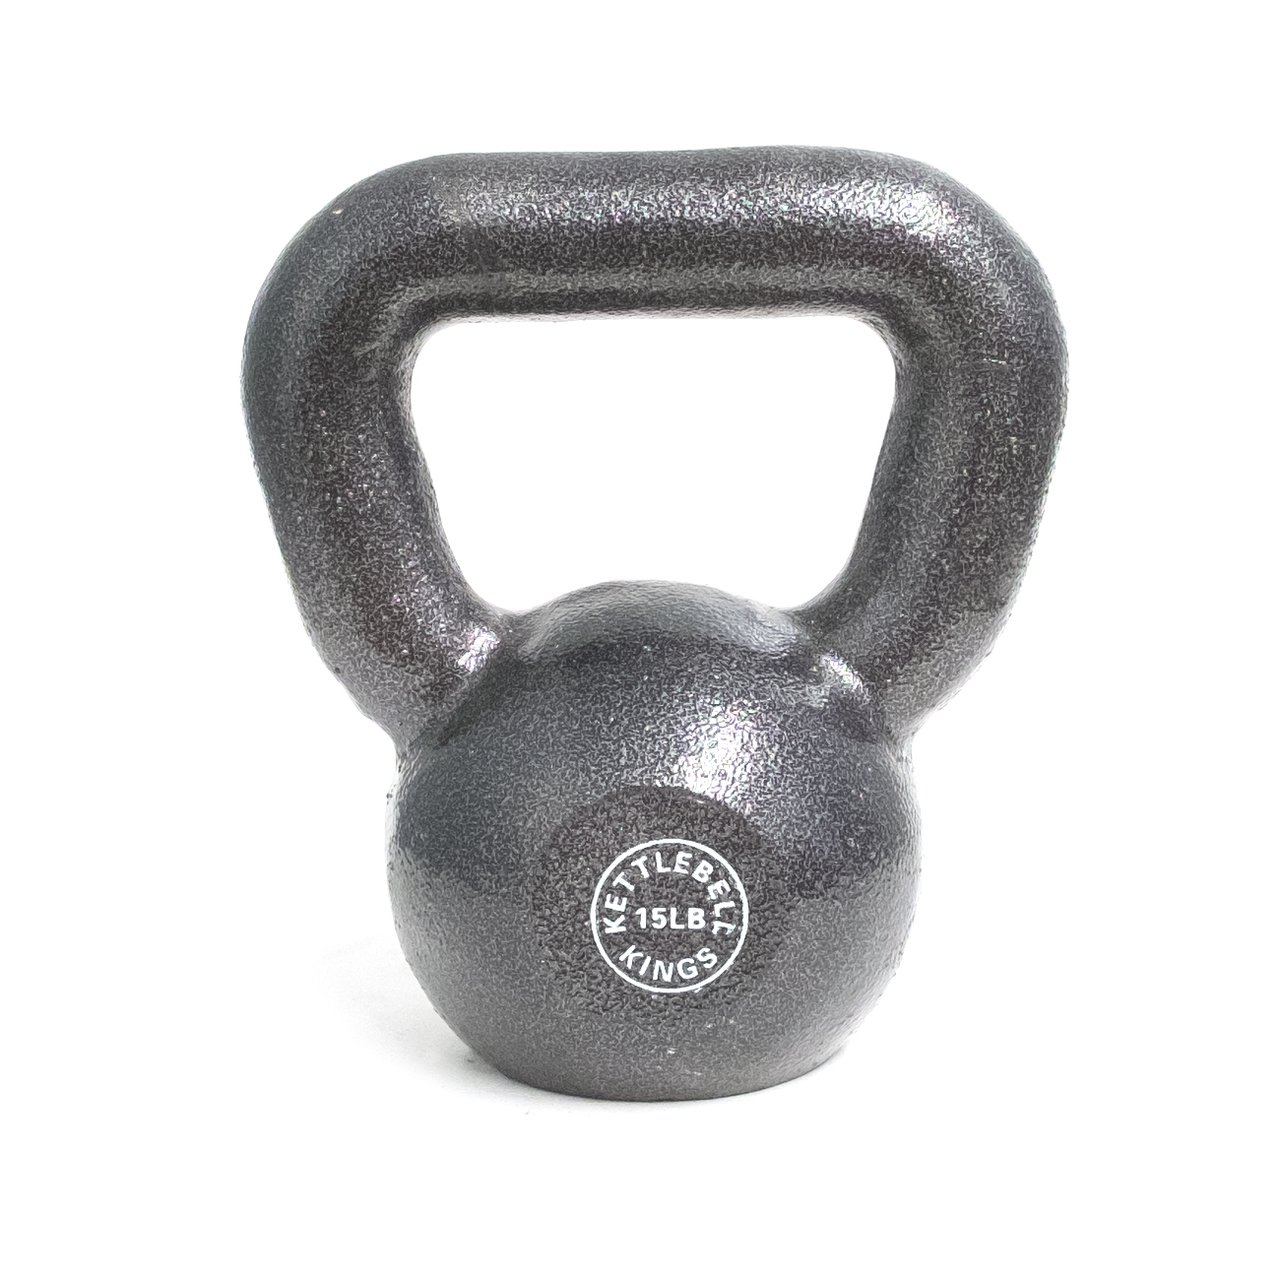 Kettlebell Kings Complete Set | Cast Iron Kettlebell 5 Pound Increments | Designed for Home Workouts, Swings & Strength Training by Kettlebell Kings